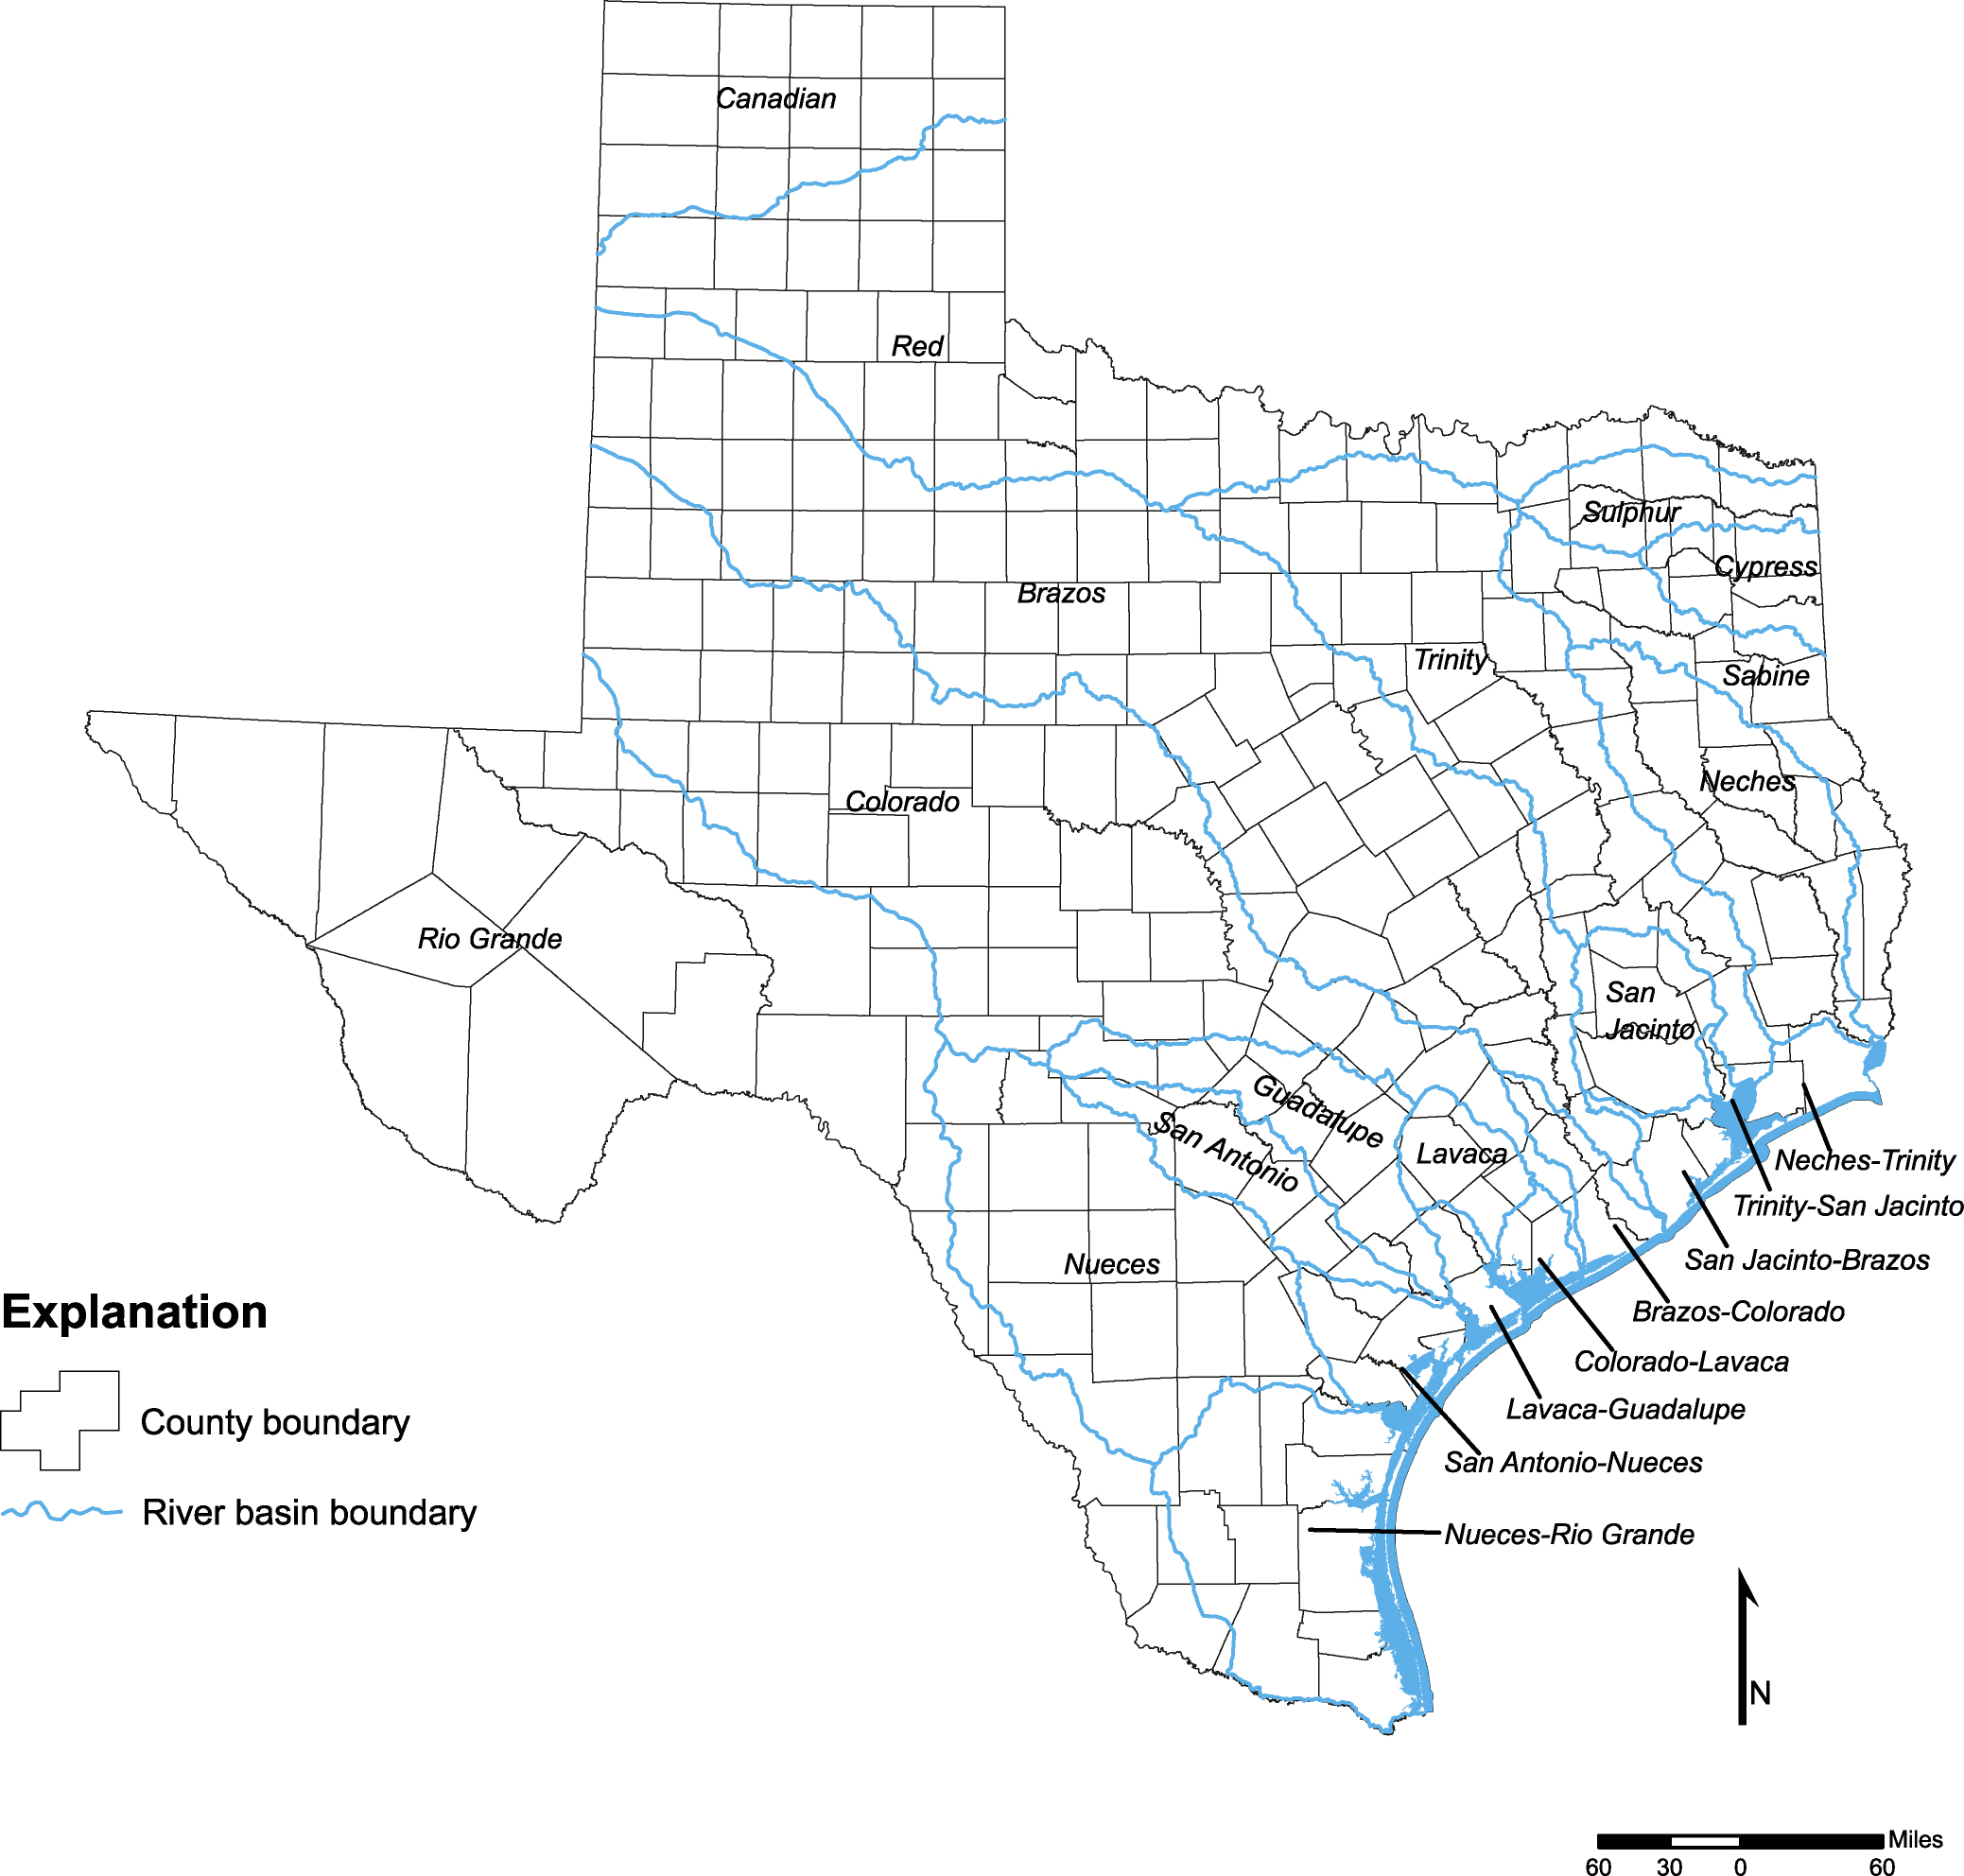 State Water Plan Texas Water Development Board - Map of texas cities and rivers